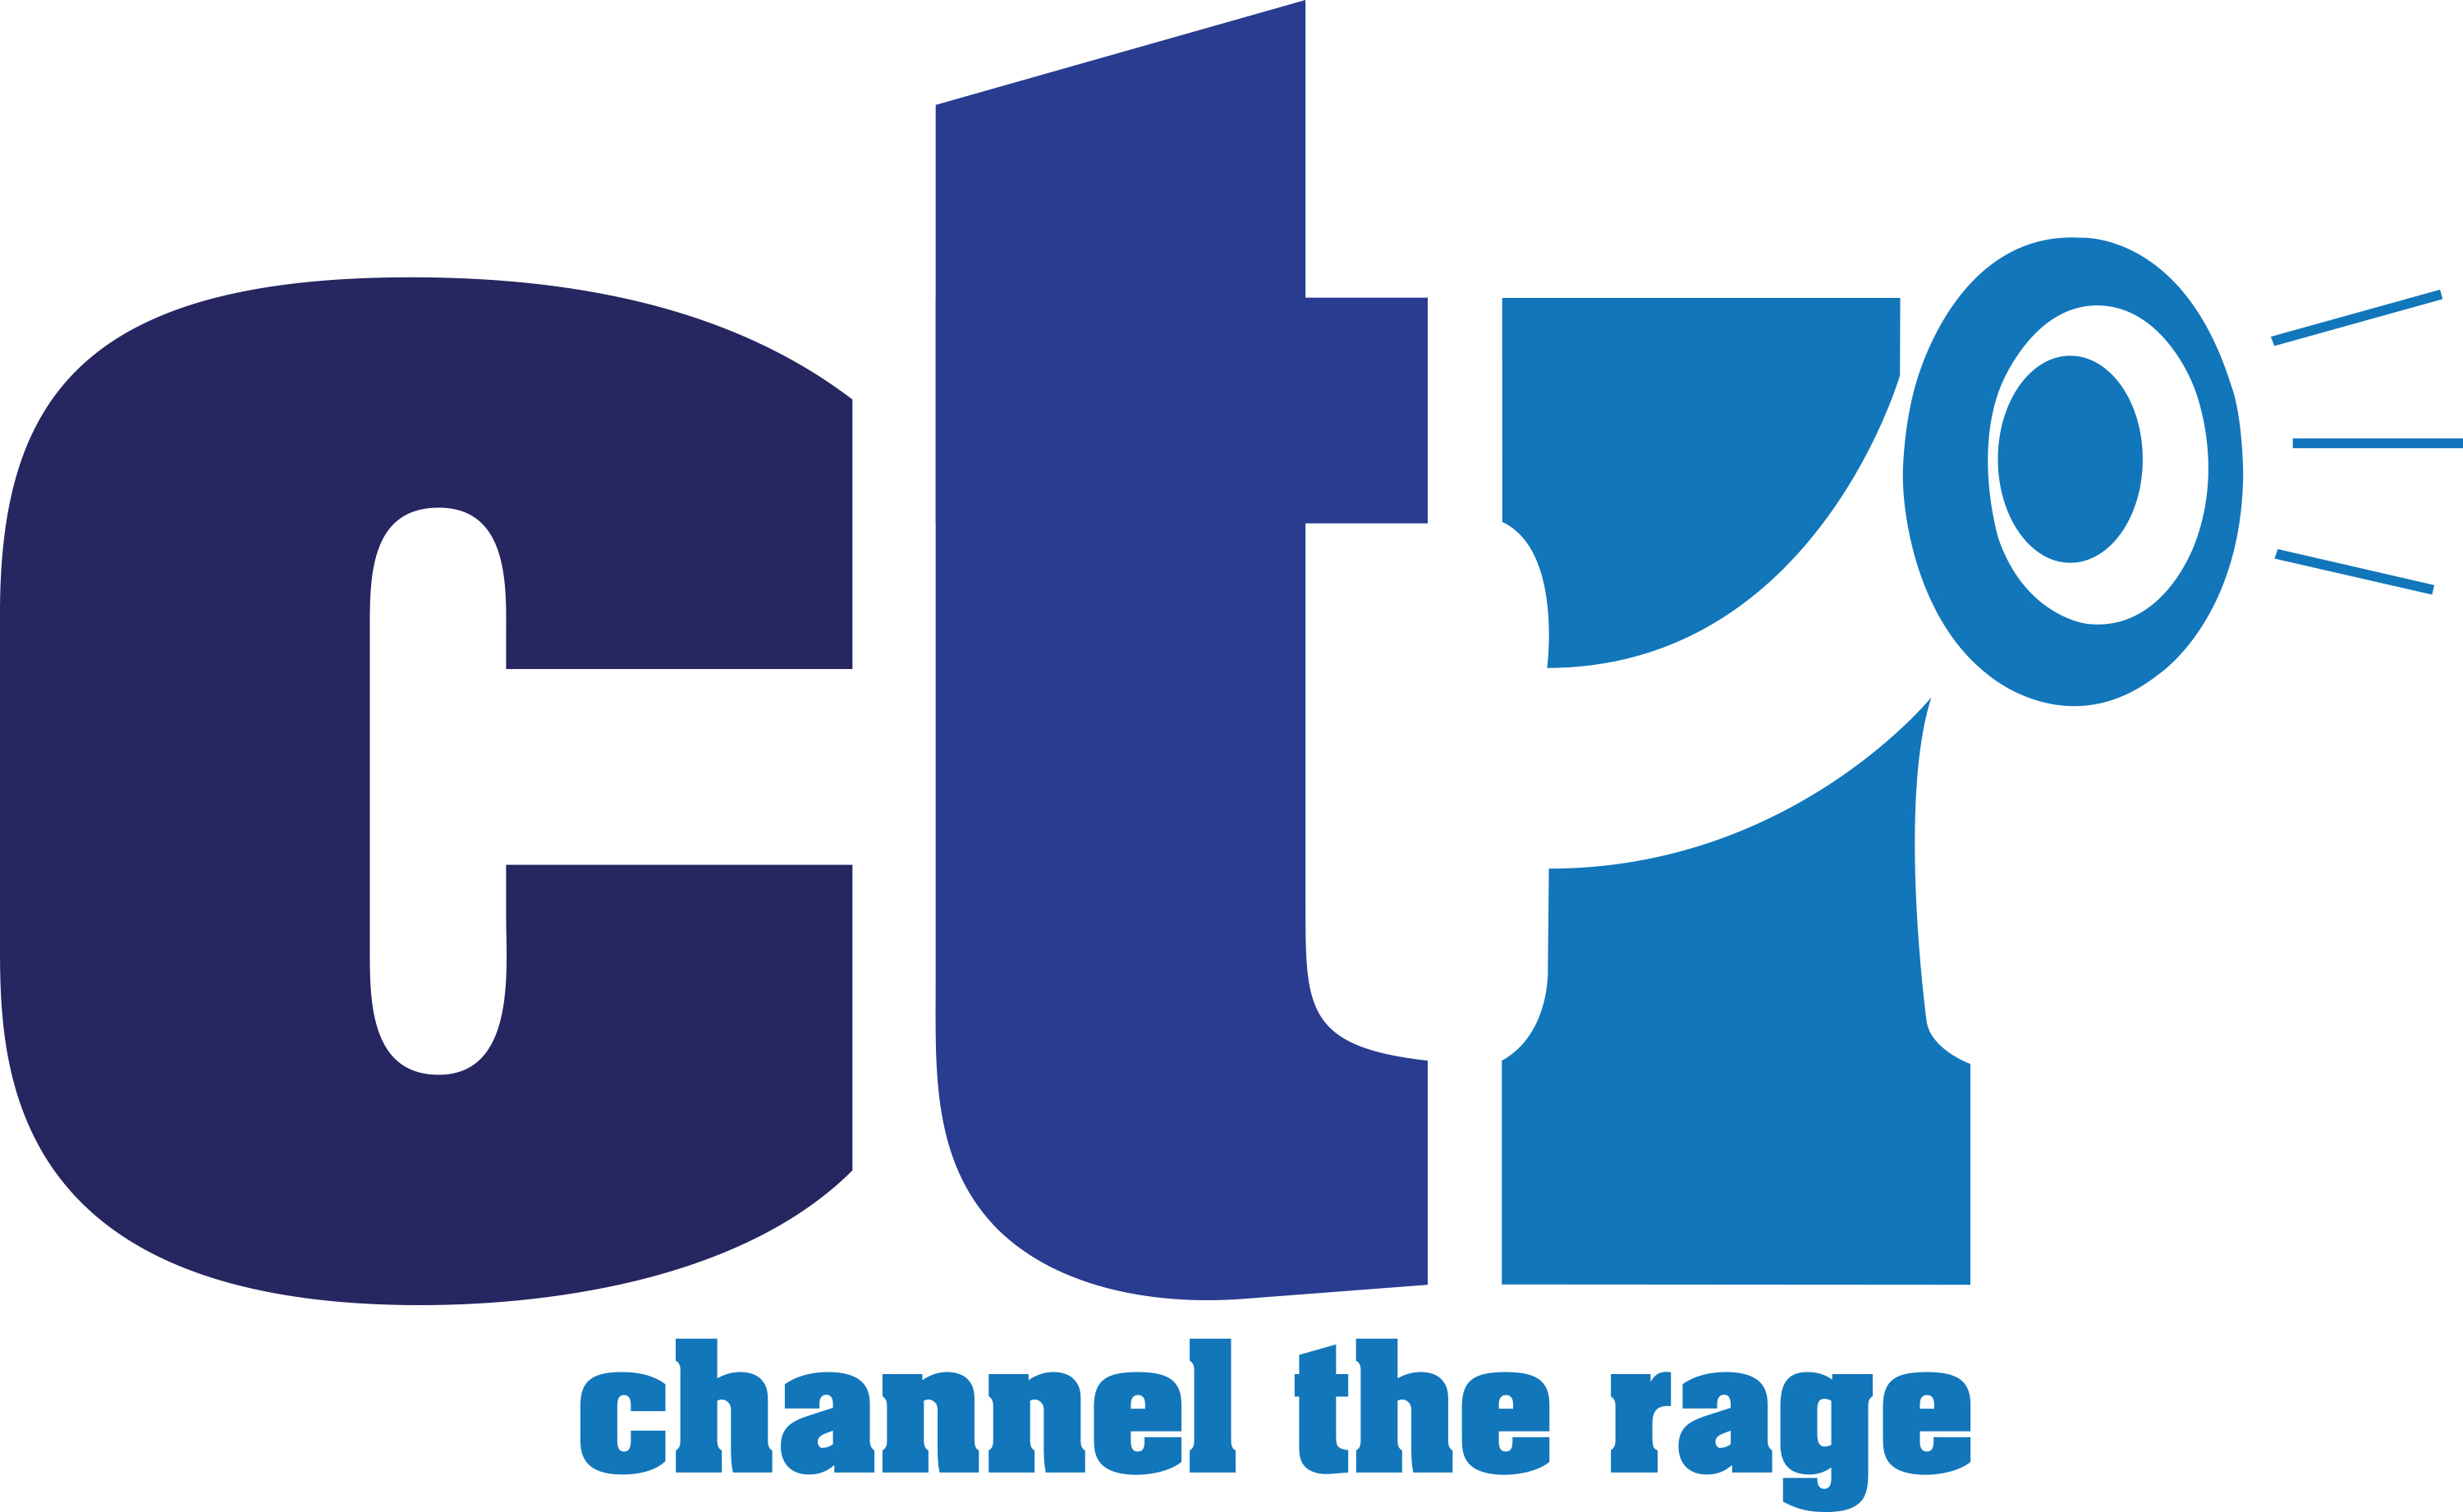 Episode 125: Fresh Evidence of Houthi Militia Atrocities in Yemen show art